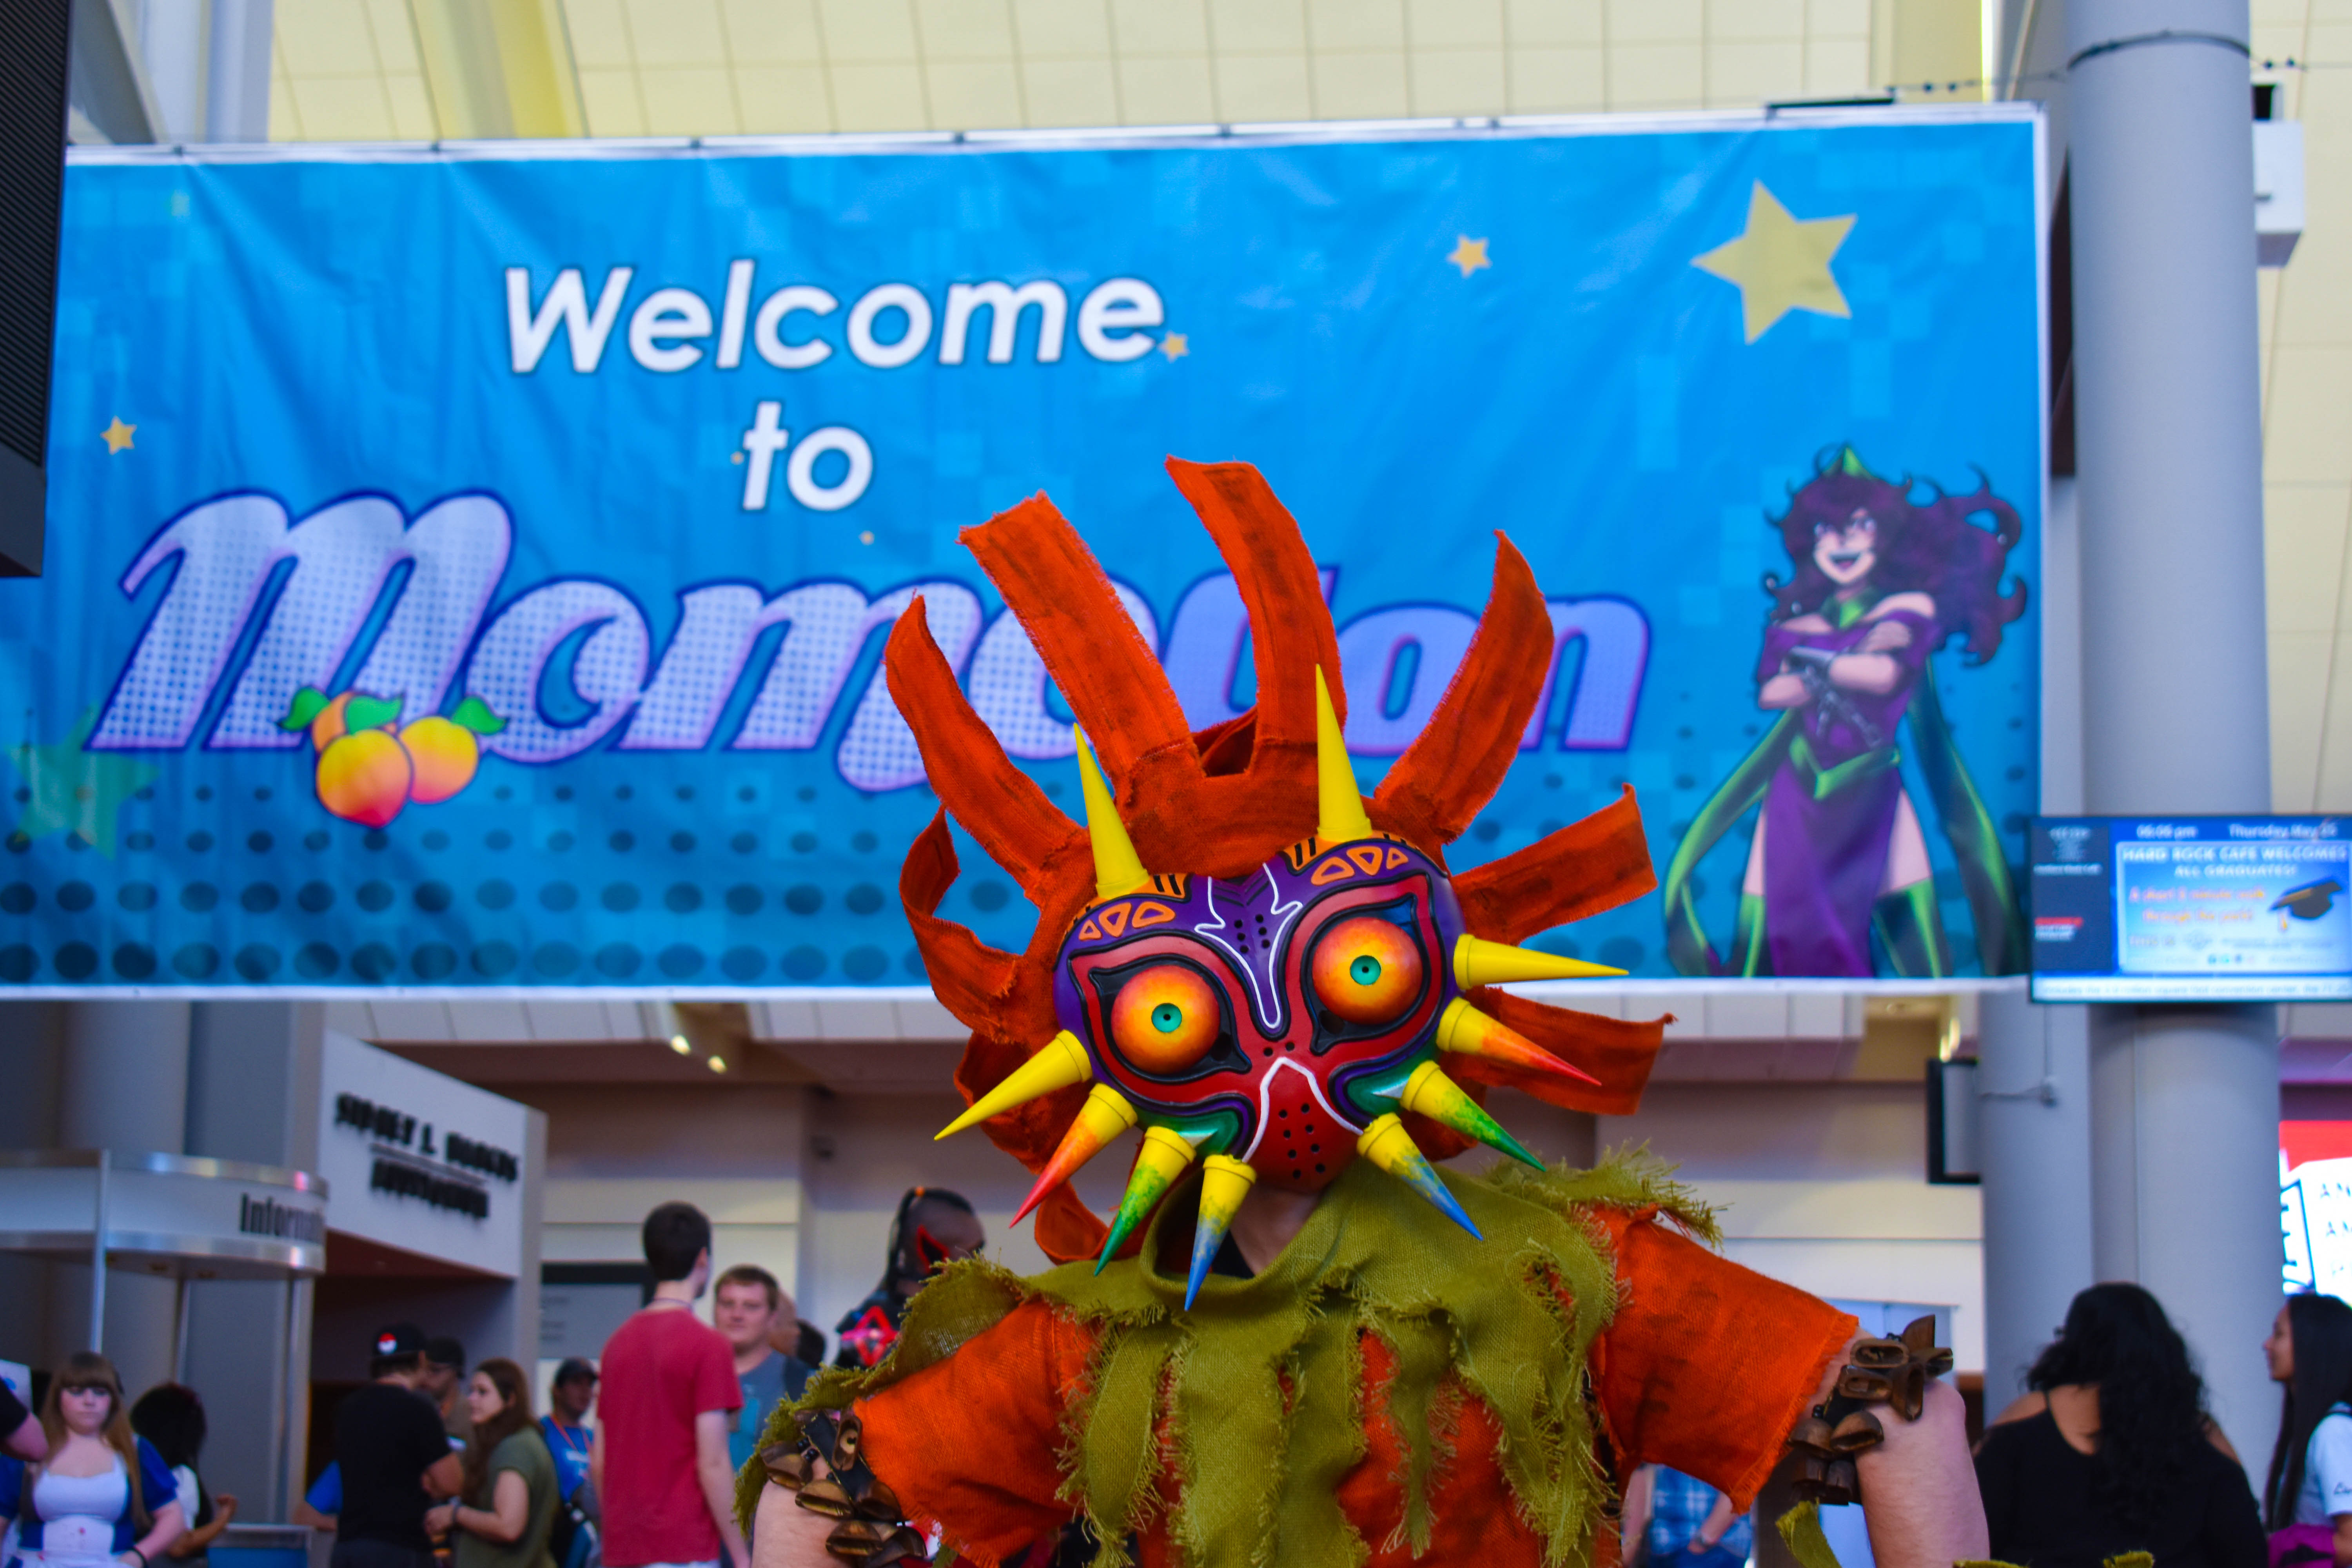 Welcome to MomoCon.